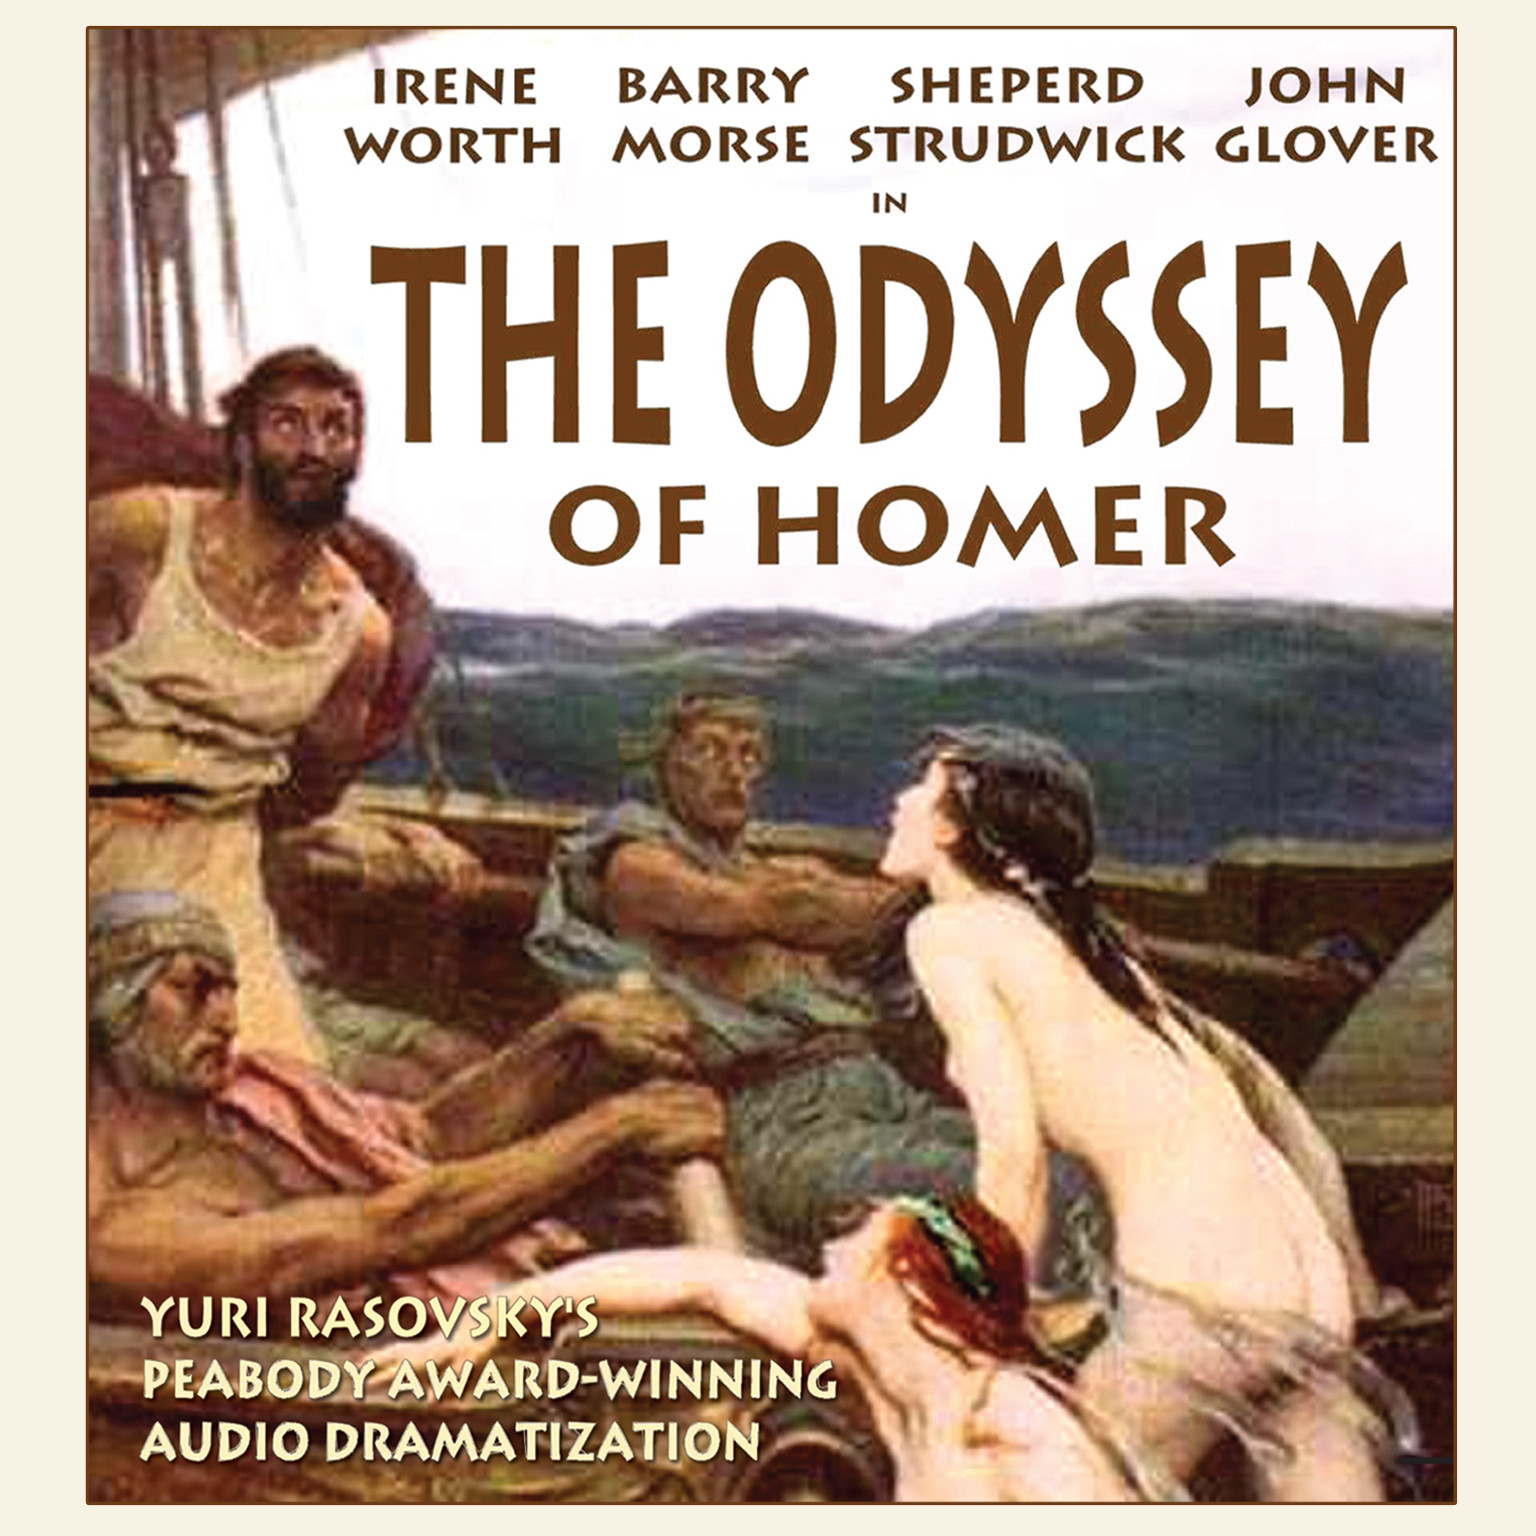 an analysis of the odyssey story and its pantheon principles by homer Essays and criticism on homer's the odyssey the odyssey critical evaluation - essay homer audience knows the story that is going to be told, as homer's.